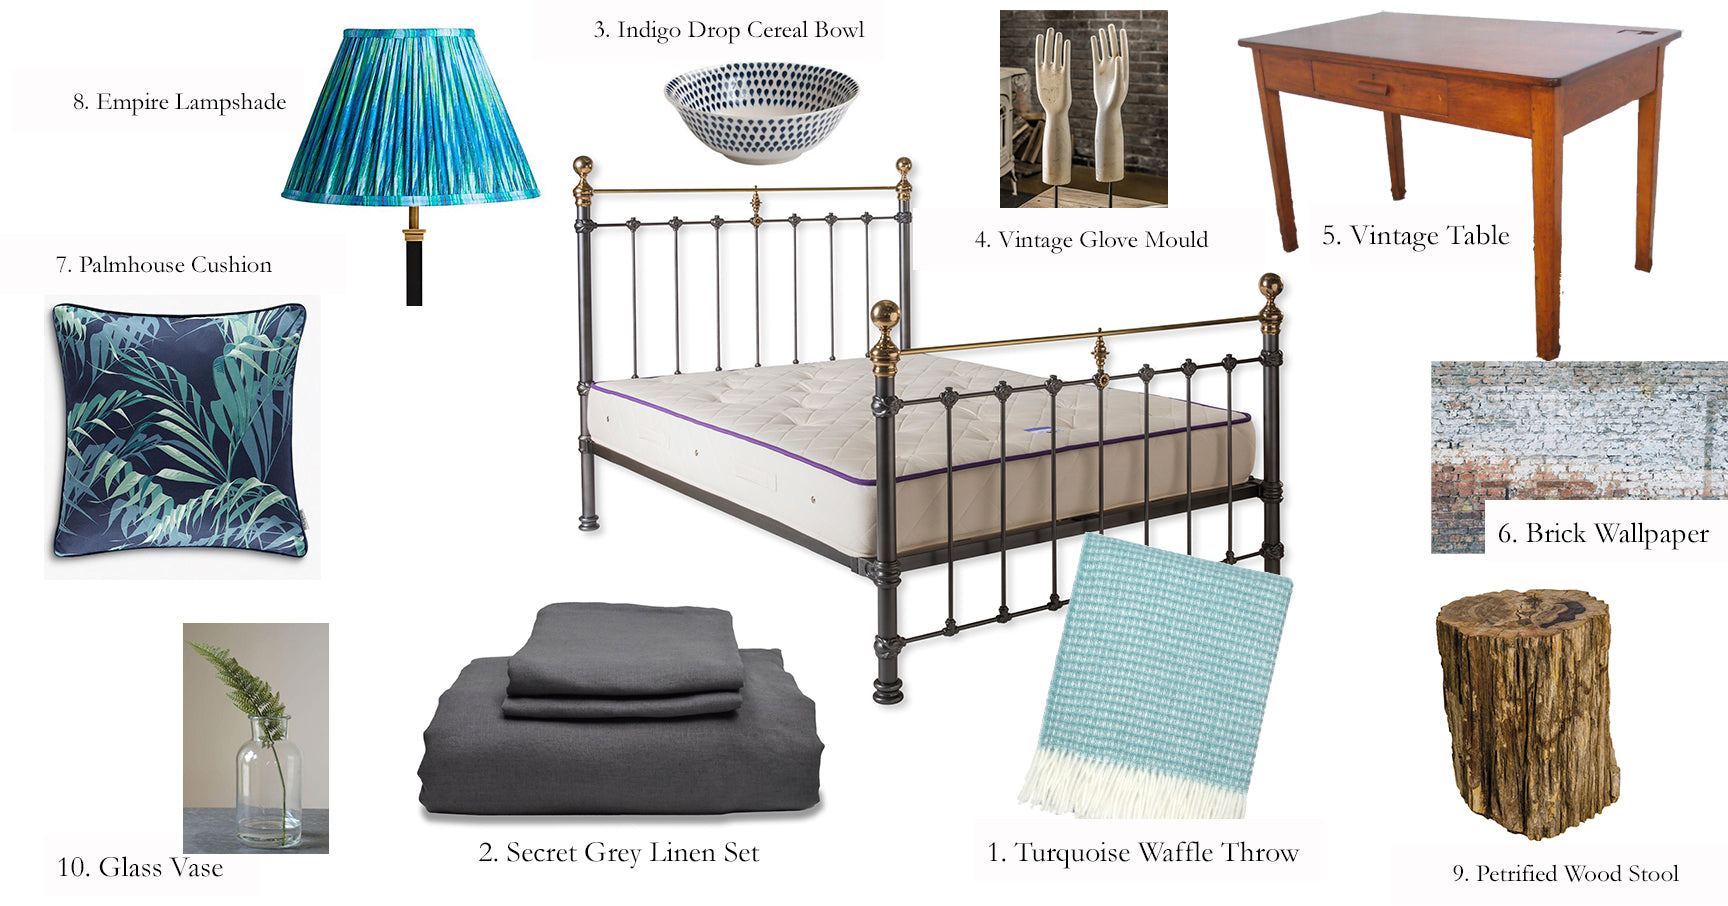 10 Items To Create A New York Loft Style Bedroom | The Cornish Bed Company Blog